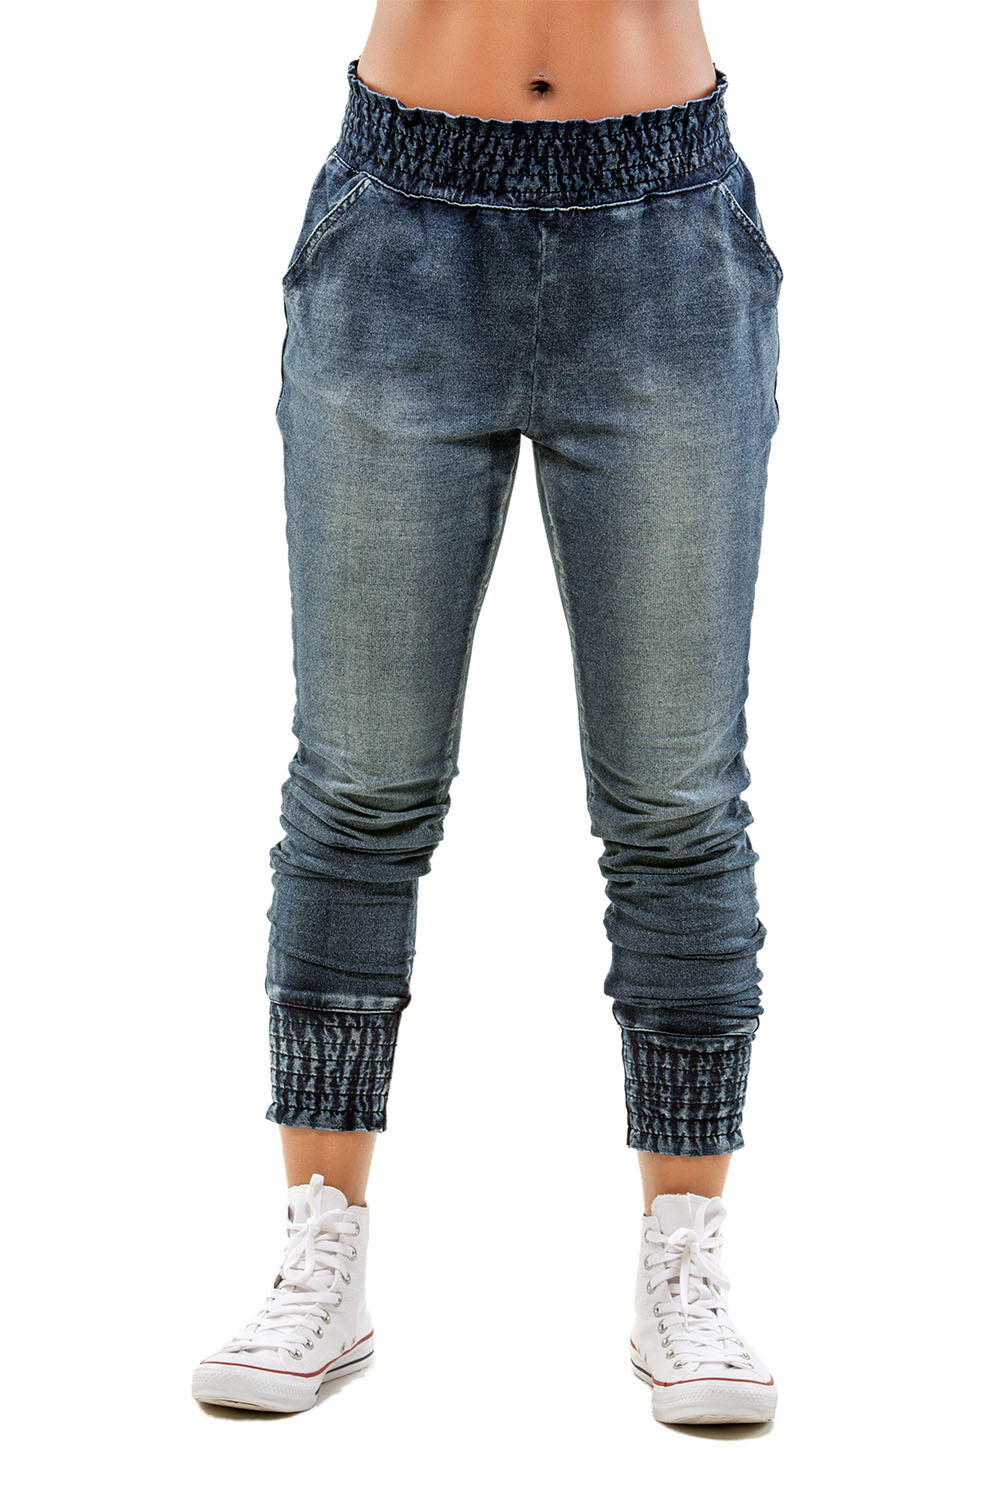 Poetic Justice Curvy Women's Frosted Wash French Terry Knit Denim Jogger Pants